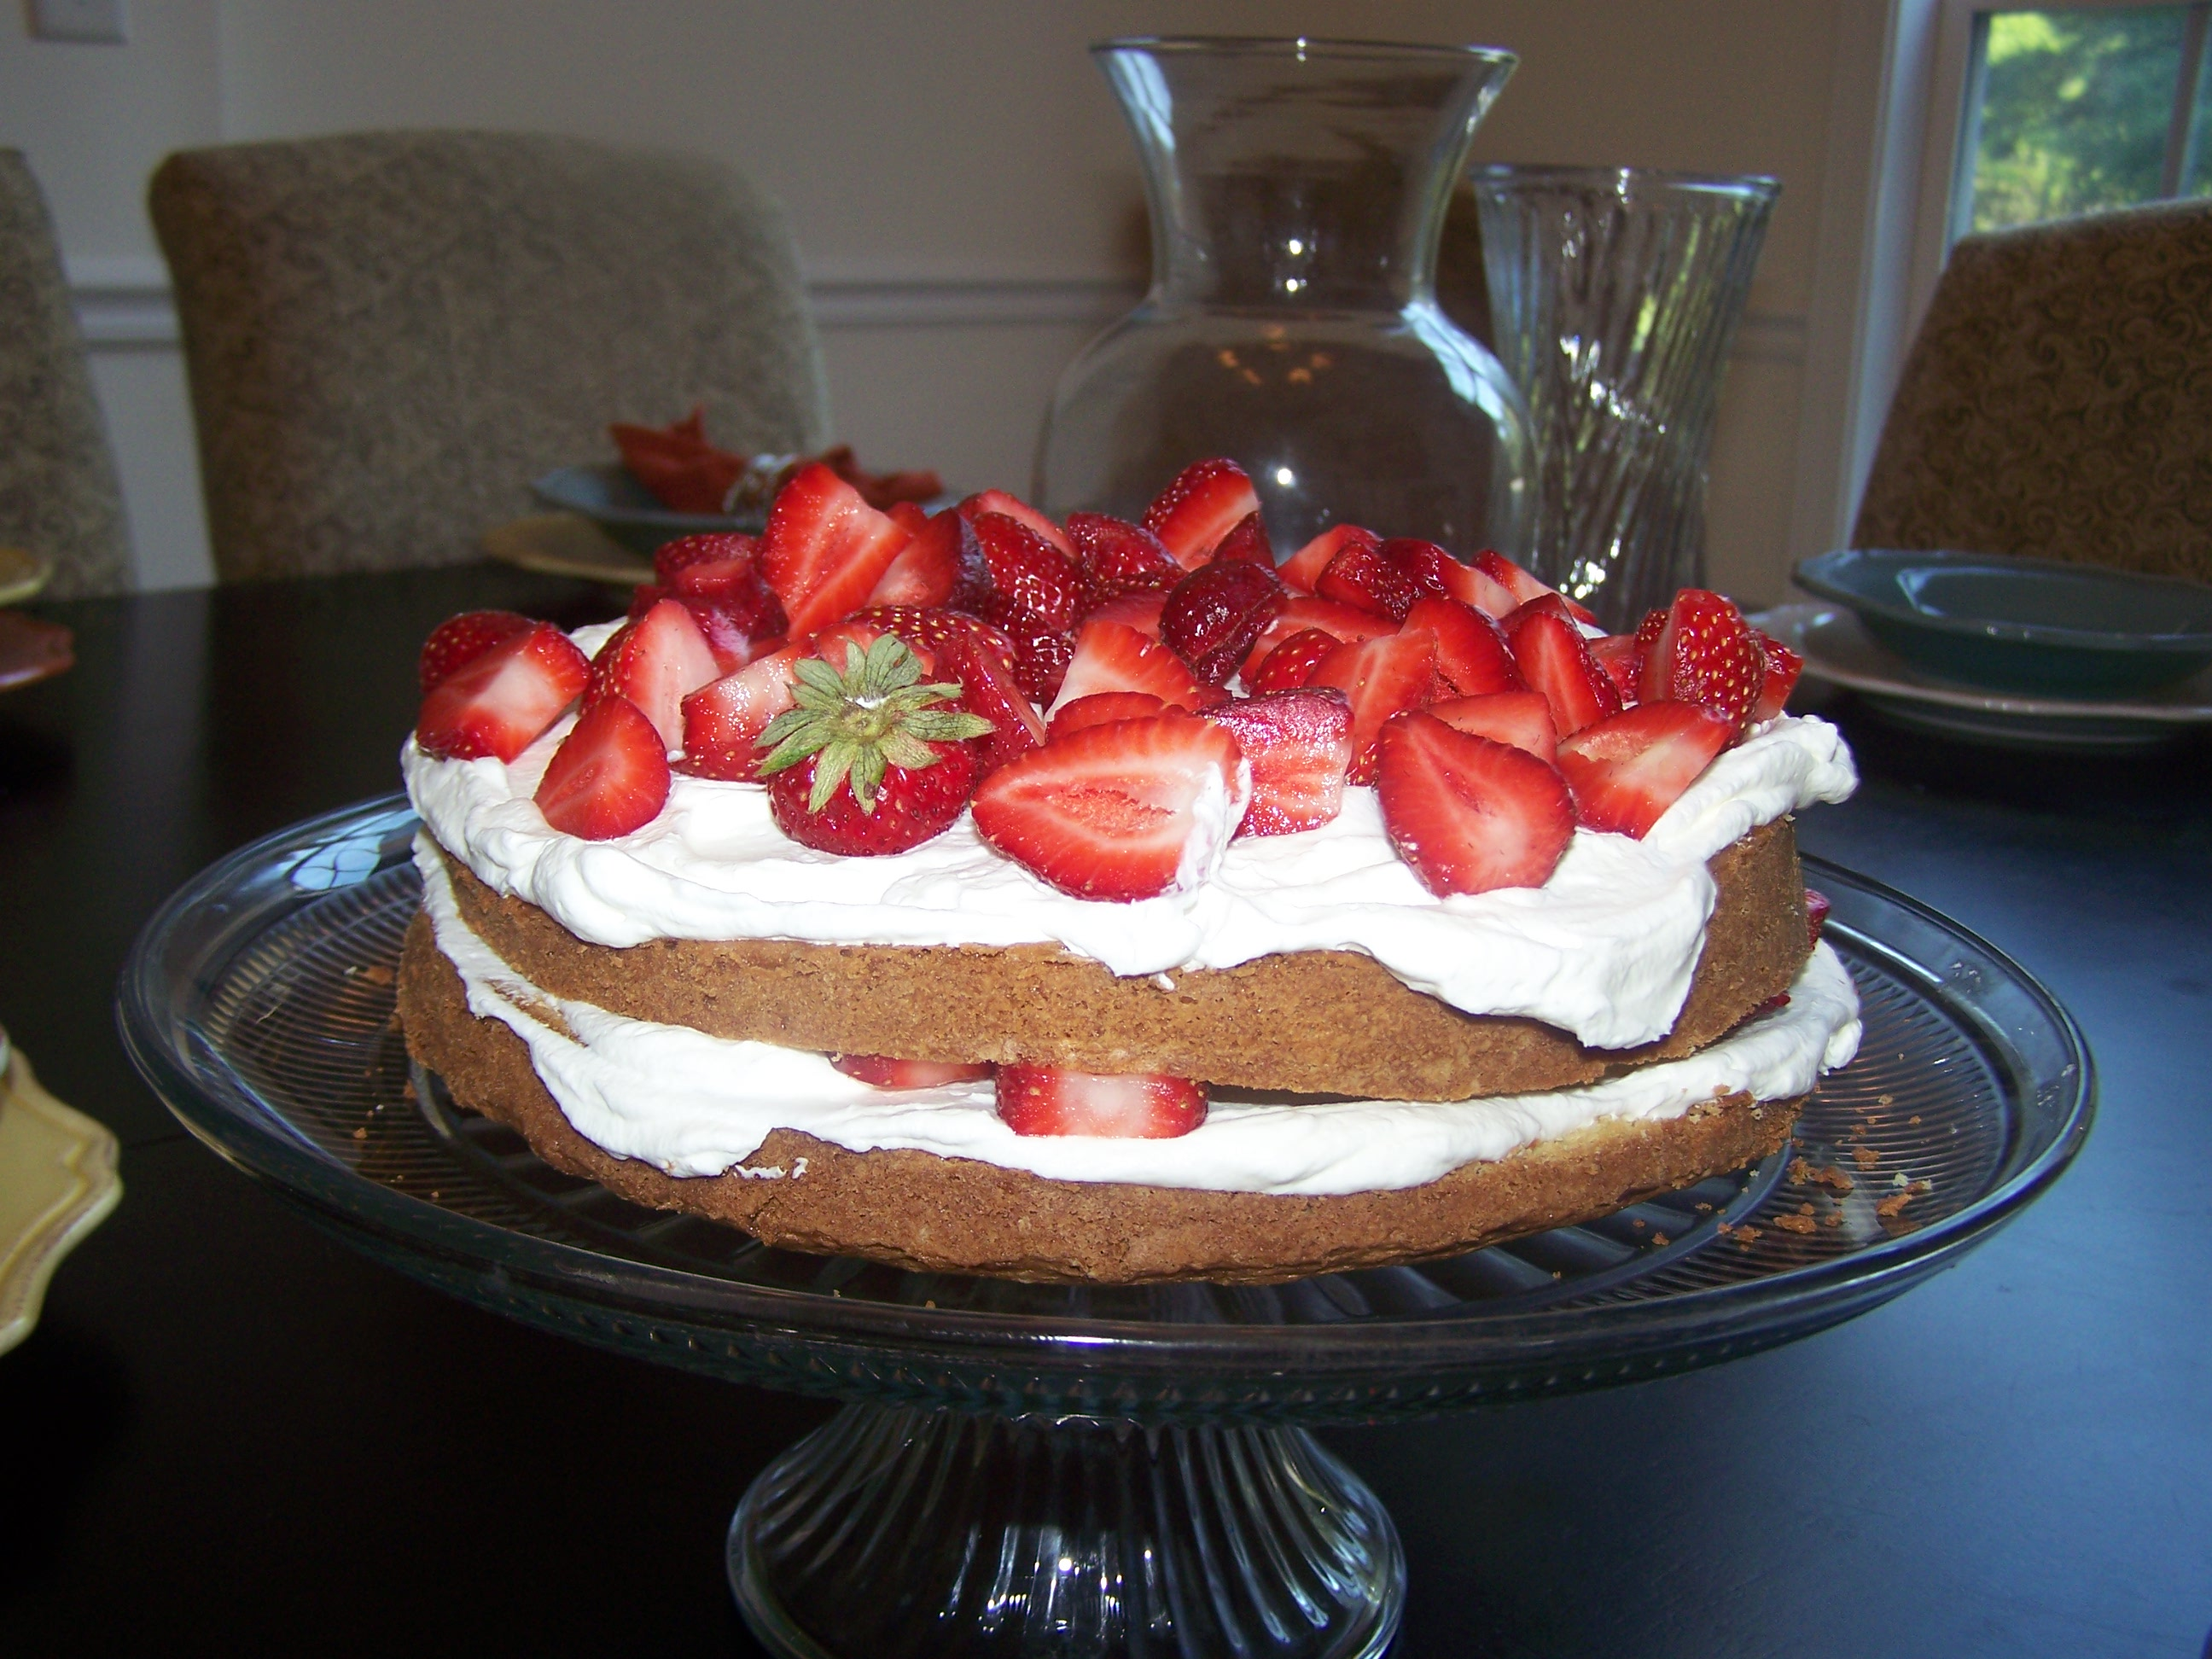 Farmers Market Fun And One Souped Up Strawberry Shortcake